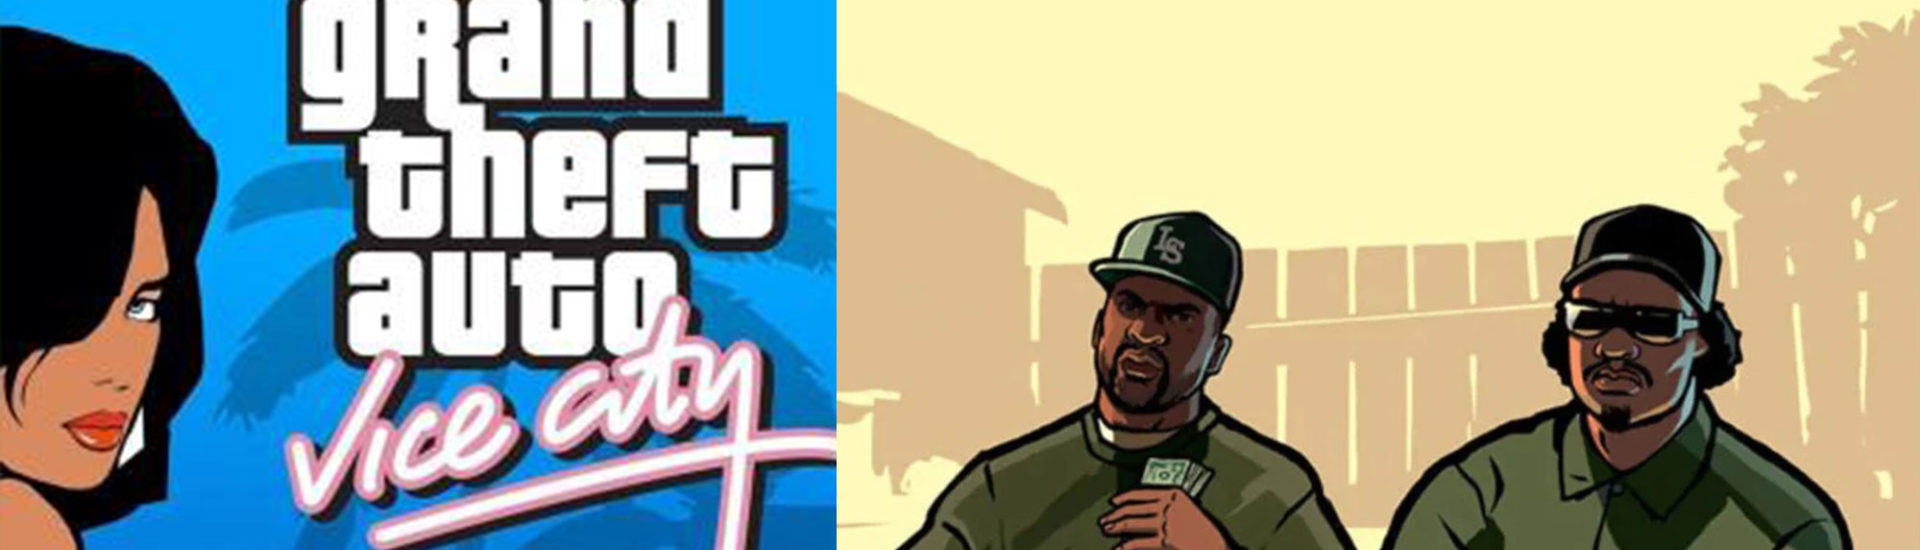 GTA-Leak: Vice City und San Andreas-Remastered